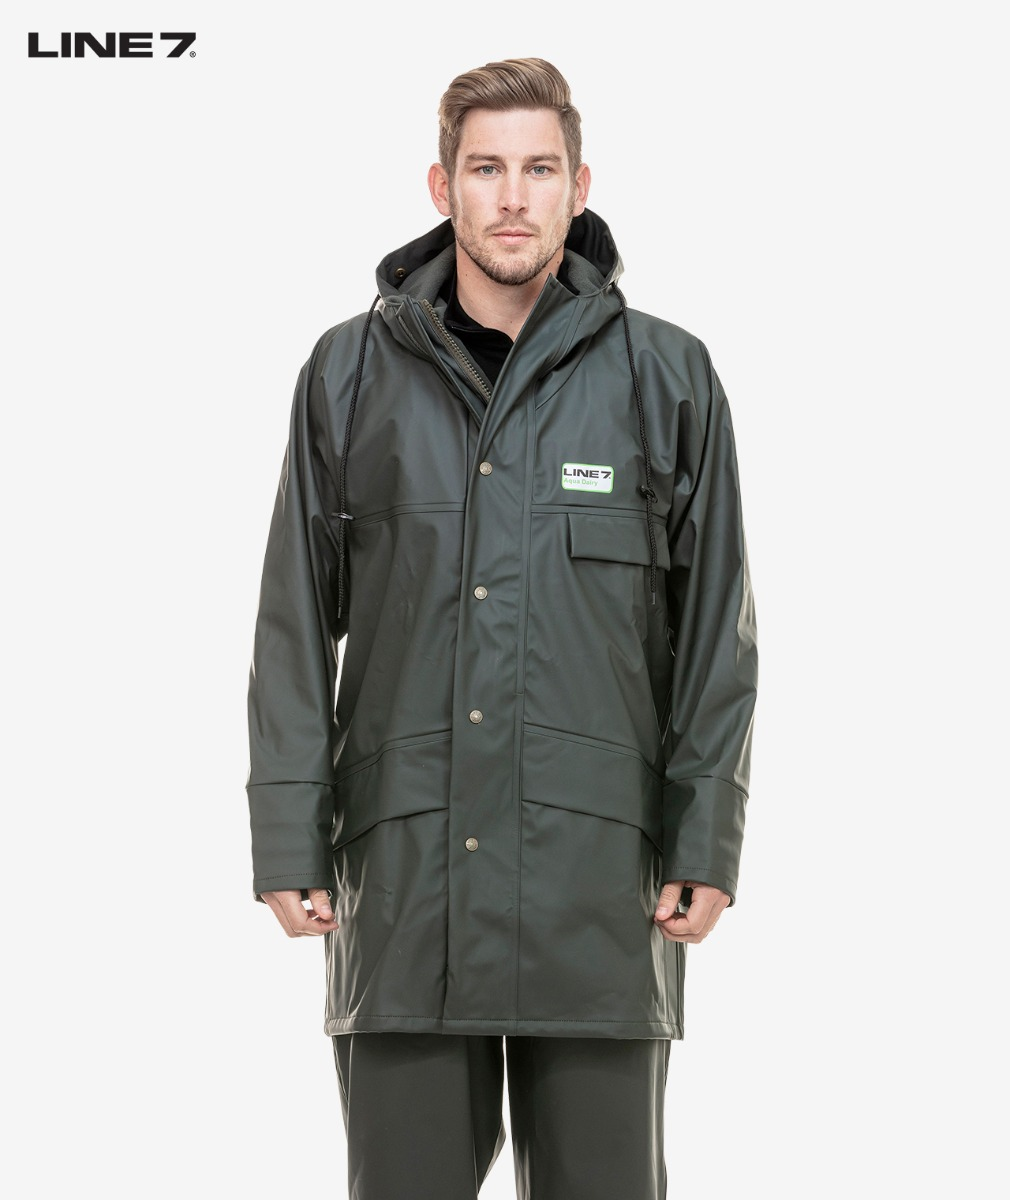 Line 7 Men's Aqua Dairy Waterproof Jacket